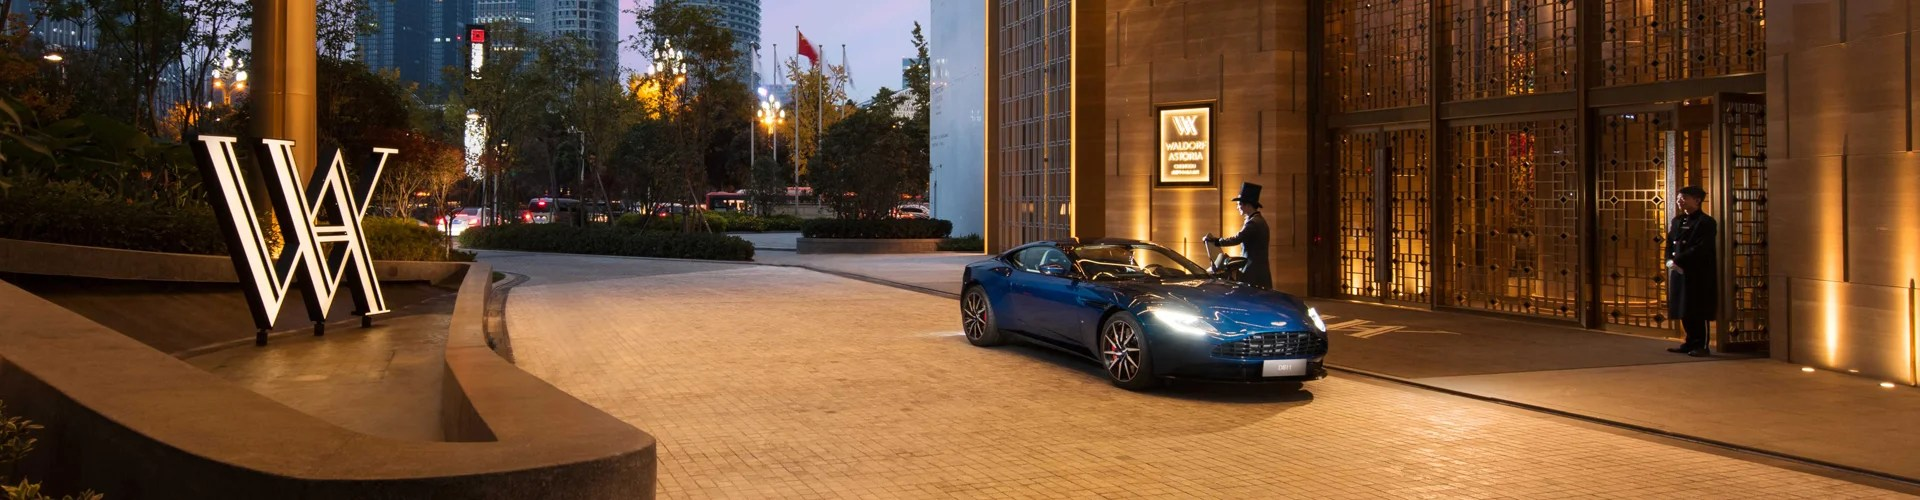 Use your Hilton Honors points to drive an Aston Martin